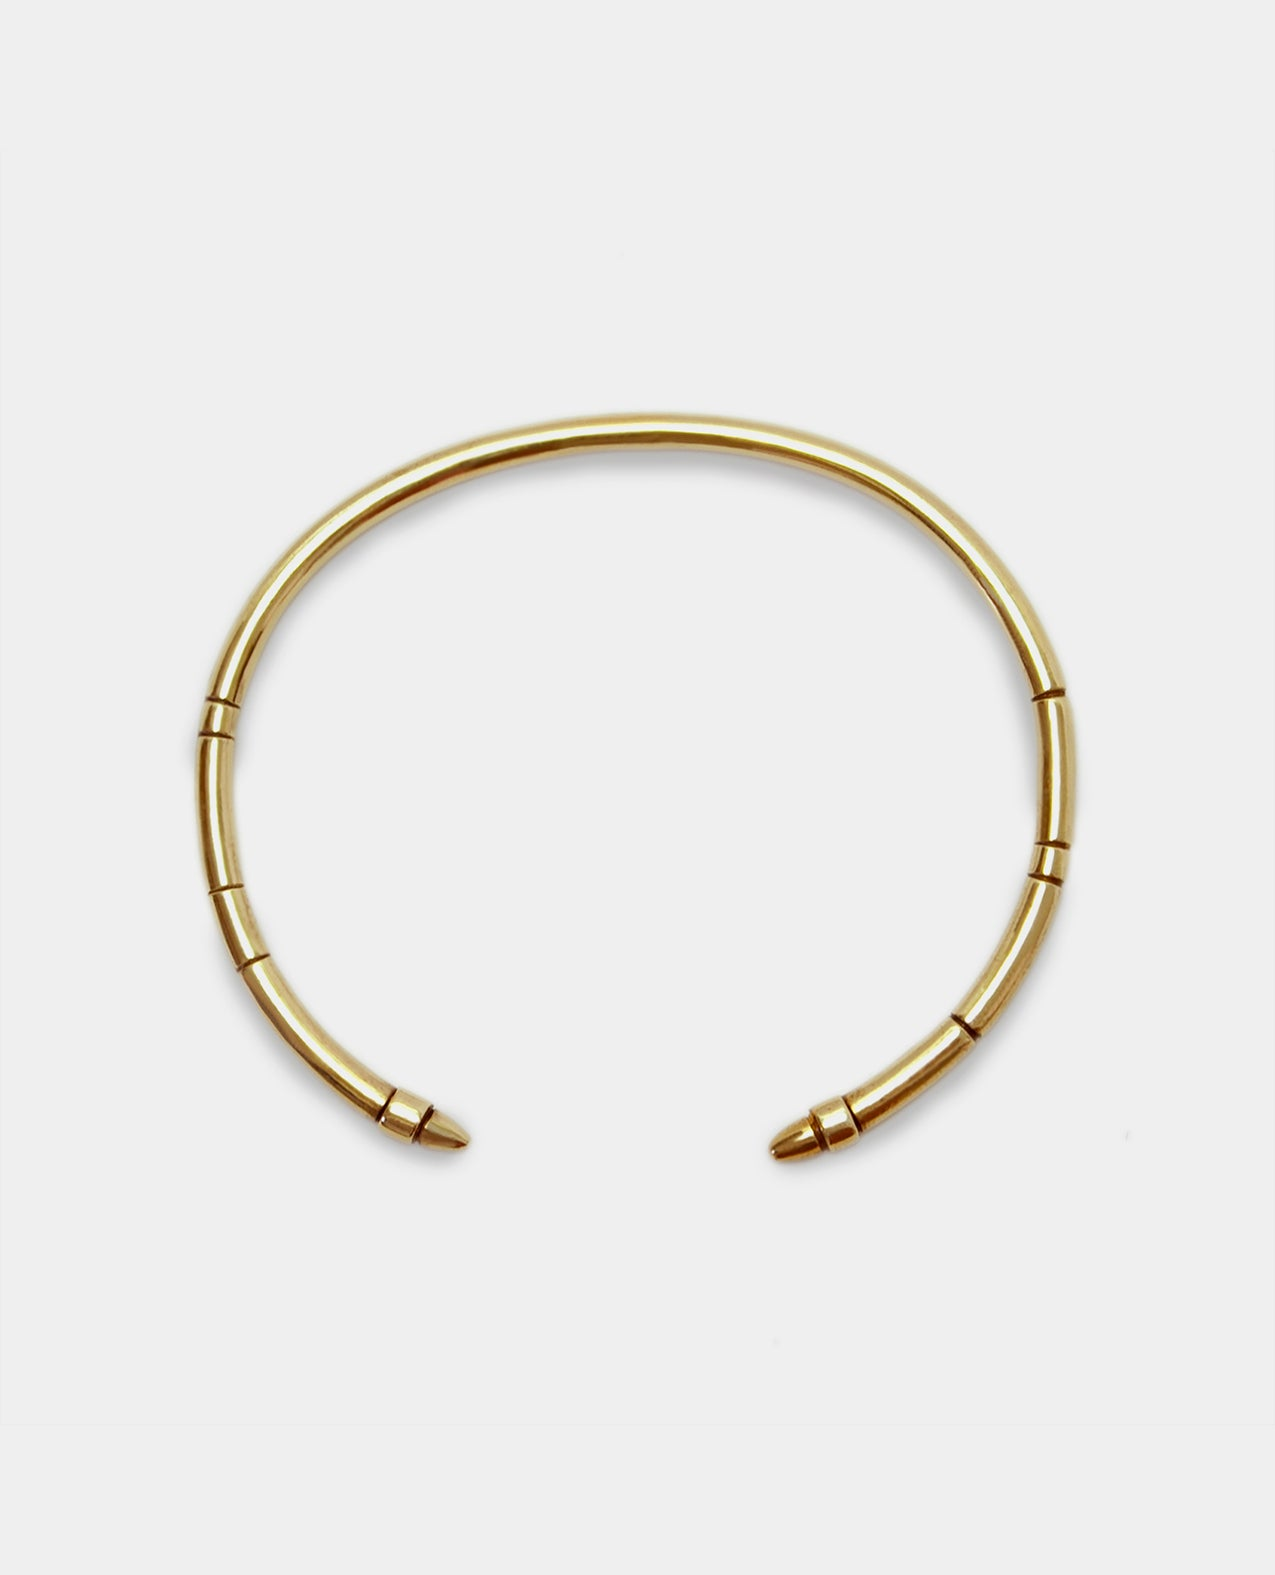 Skinny Segmented Bangle